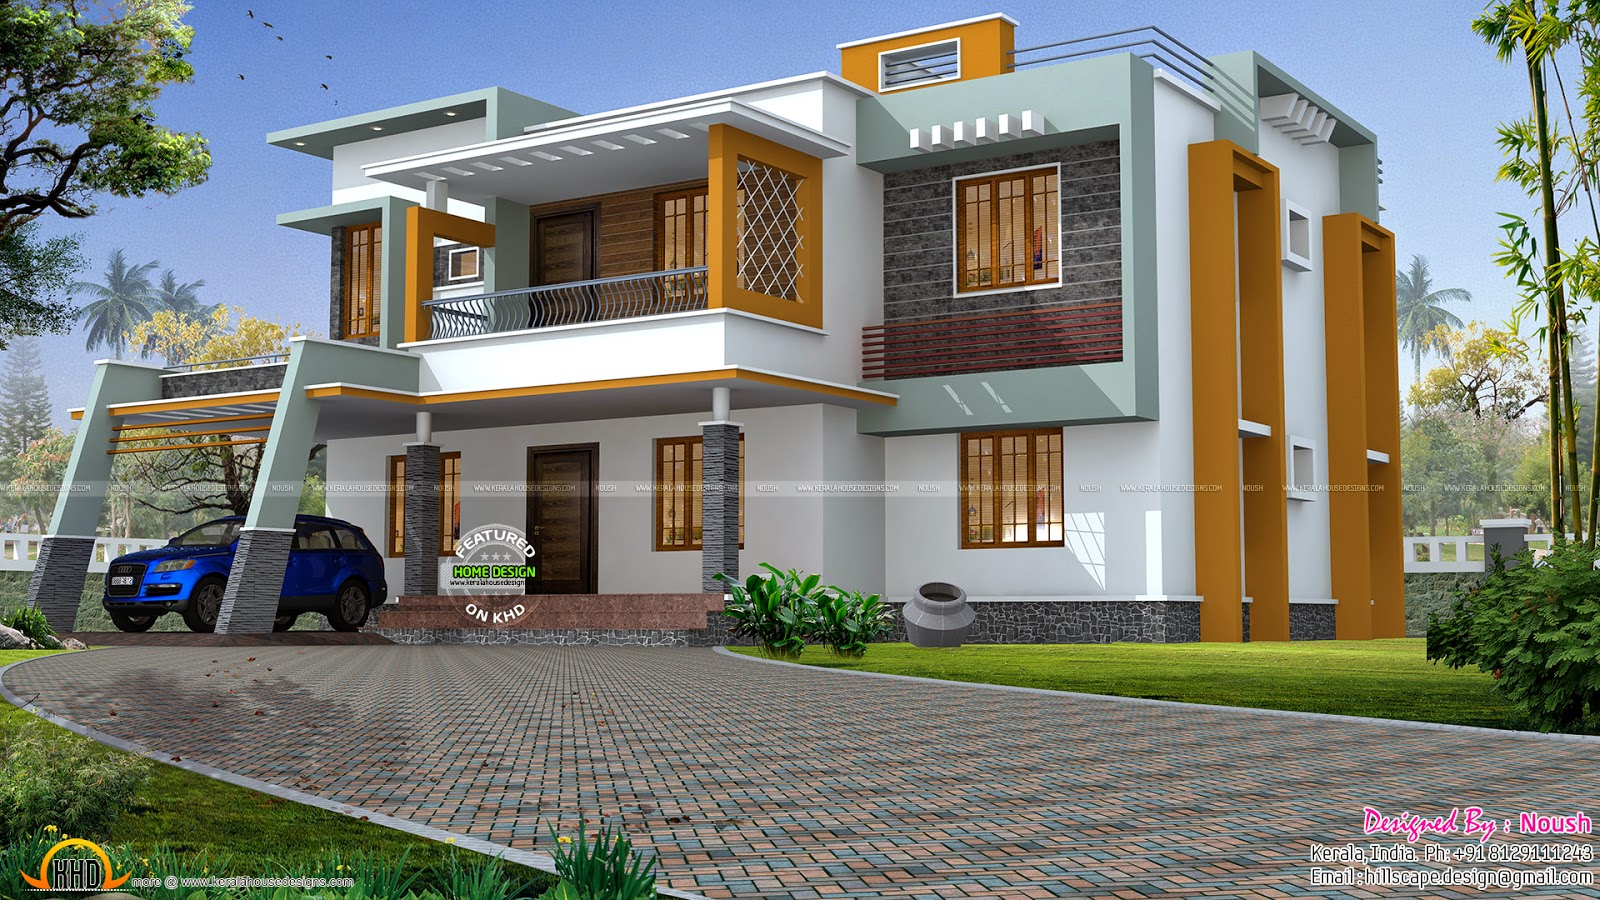 Box style house kerala home design and floor plans for House plan styles